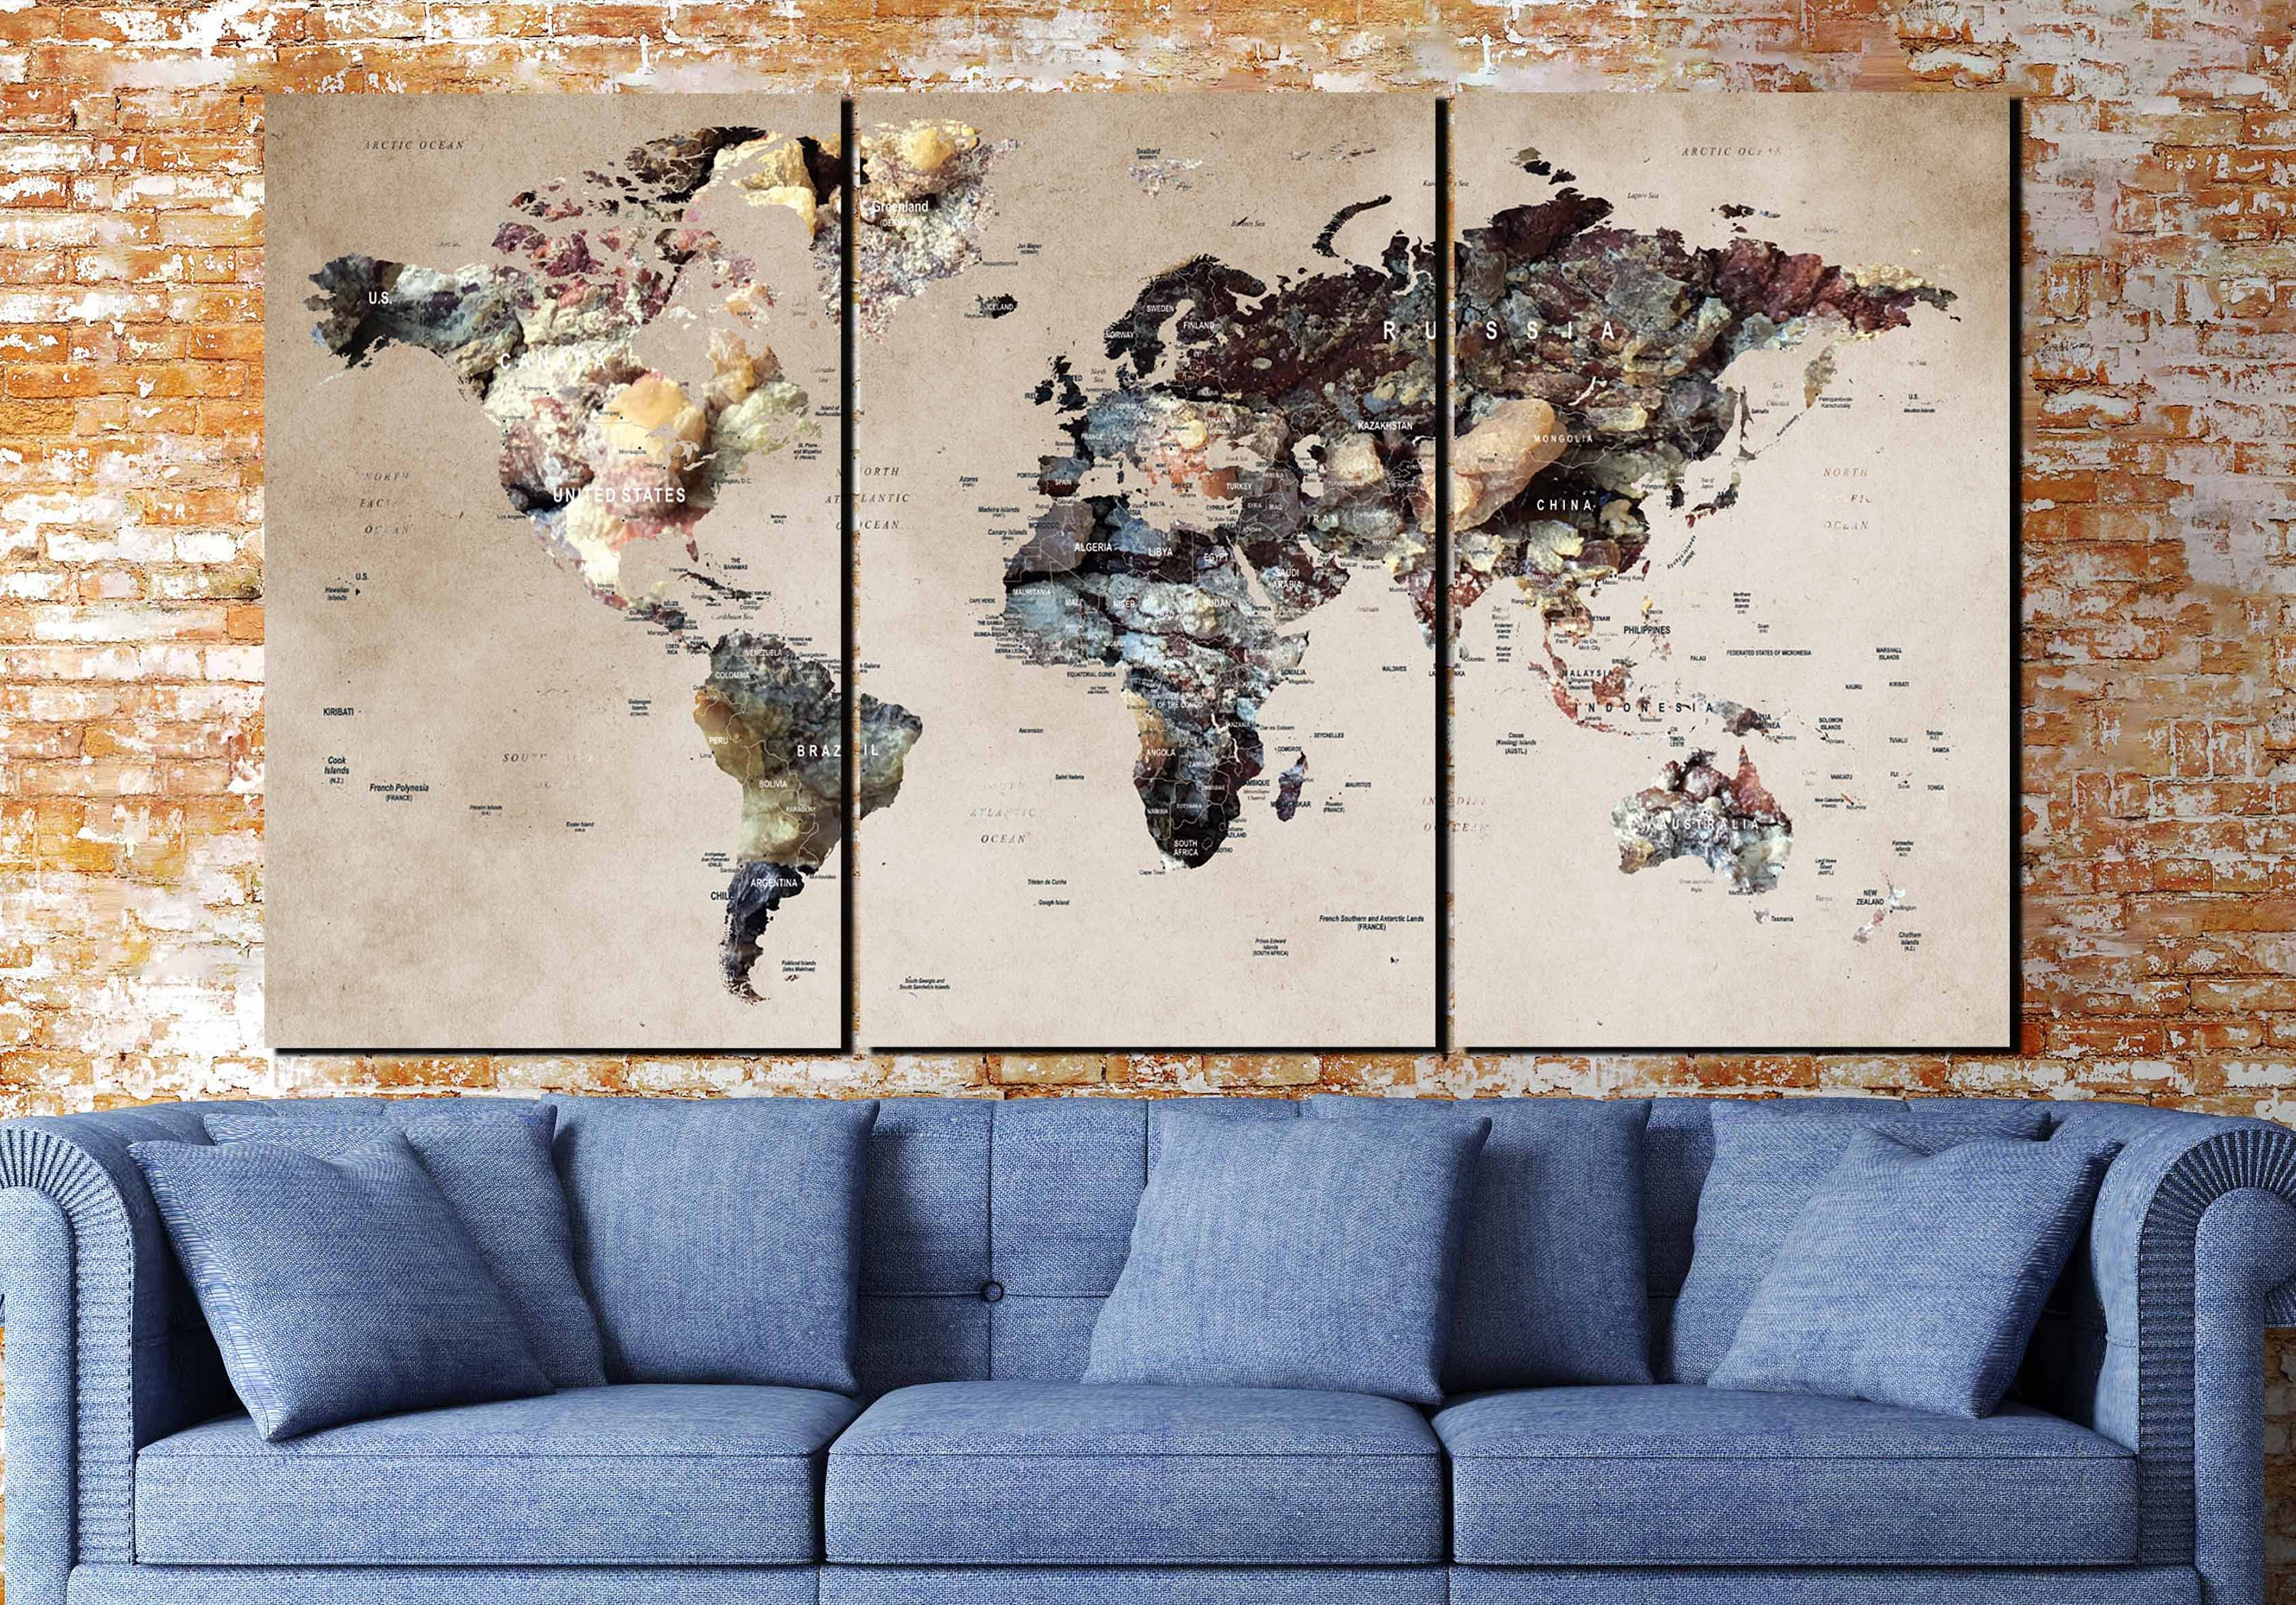 World map canvaslarge world mapworld map artworld map 3 panels world map canvaslarge world mapworld map artworld map 3 panelsworld map abstractmap art canvastravel map canvaspush pin mapwall art gumiabroncs Choice Image